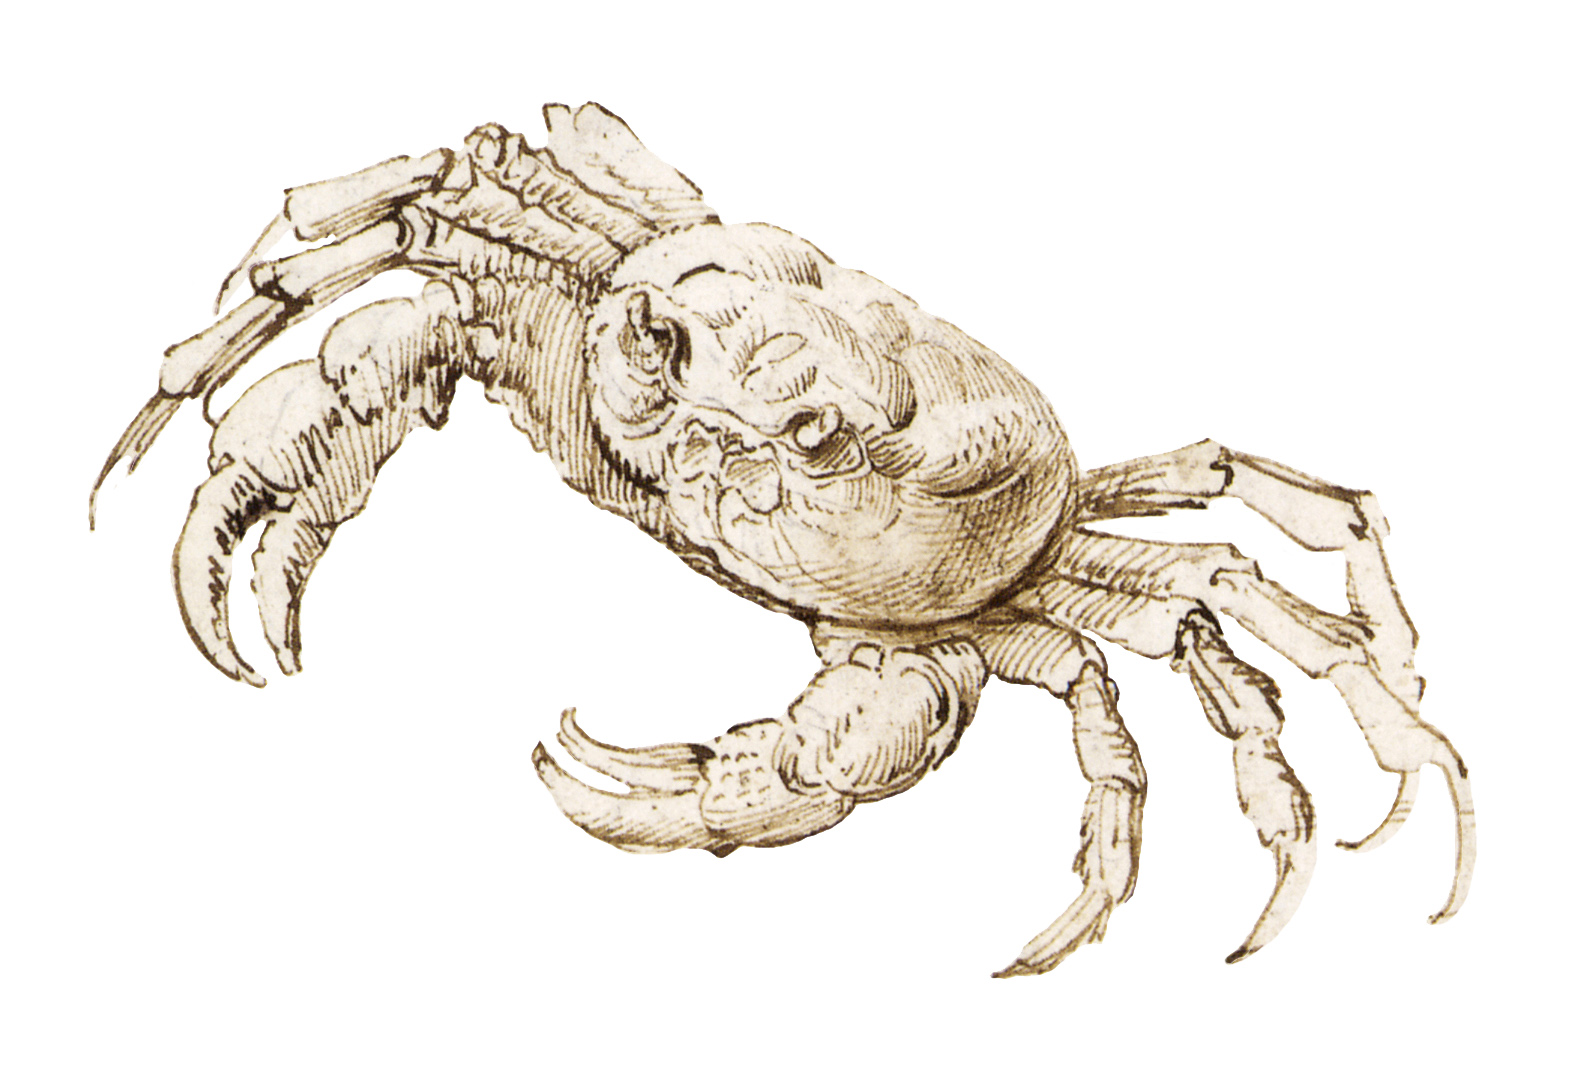 Leonardo da Vinci - Drawings - Animals - Crab Cut out.JPG